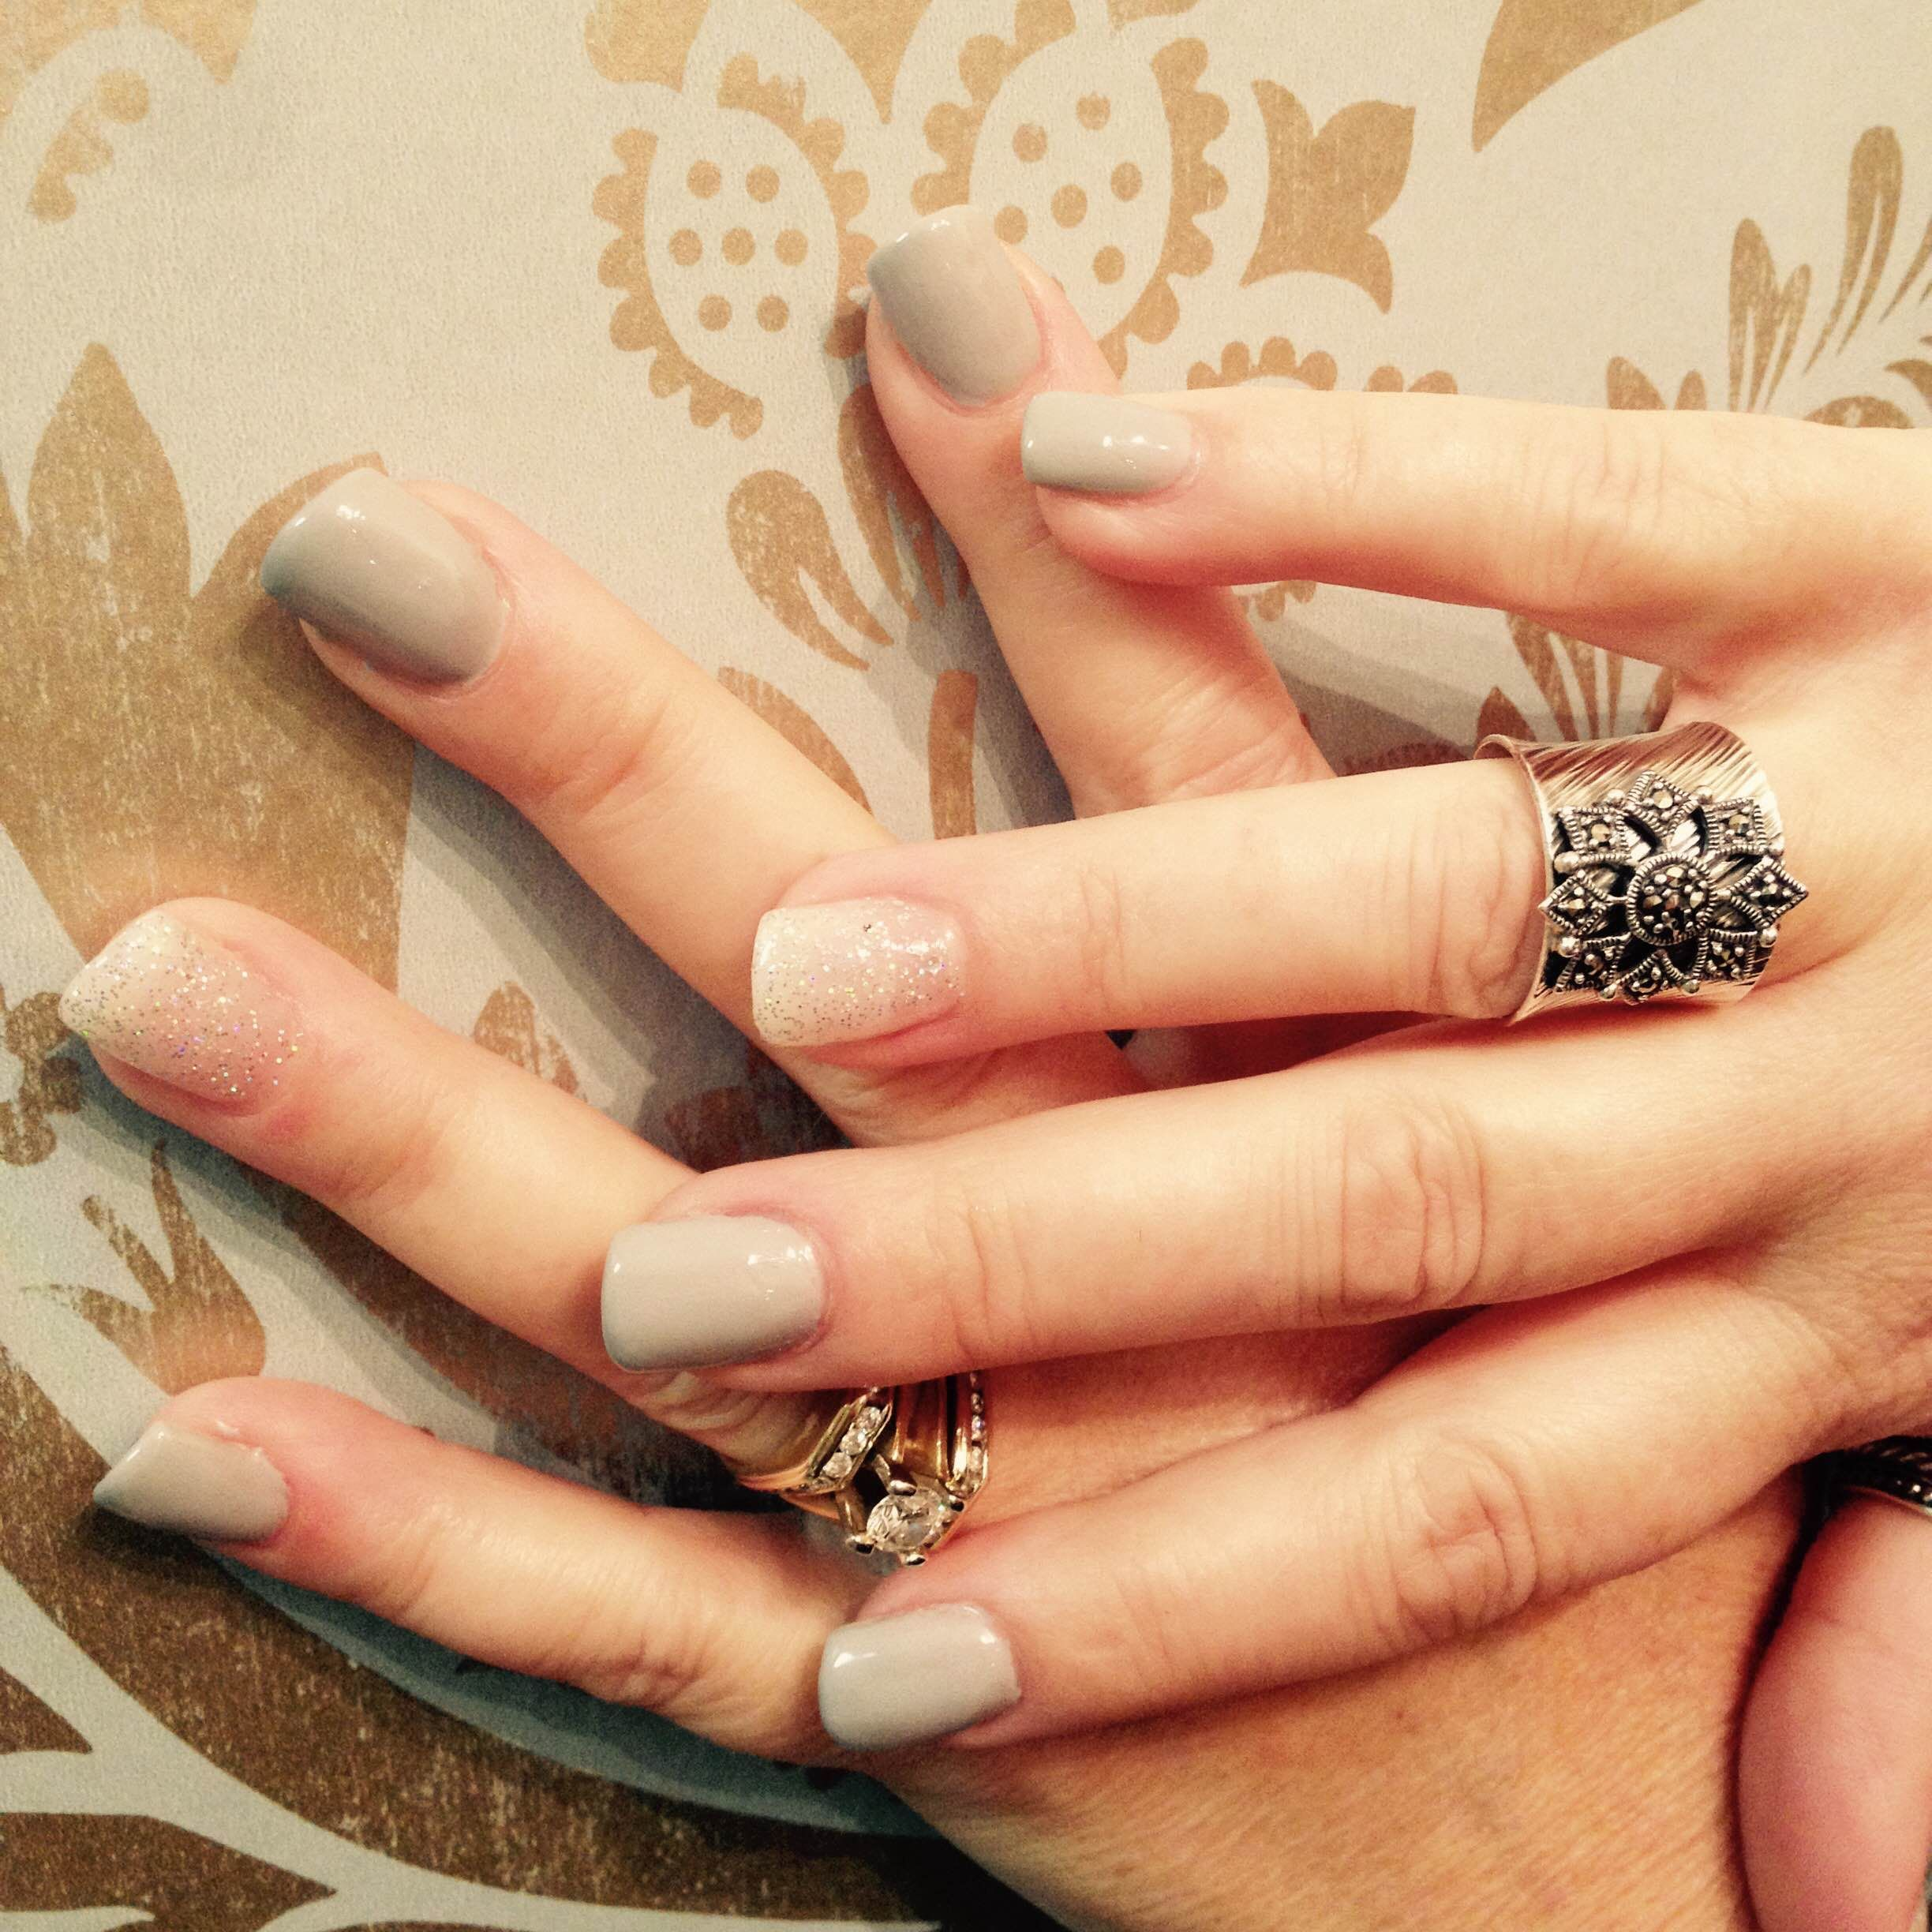 Nails done here at our spa in St. Albert, Alberta Glow